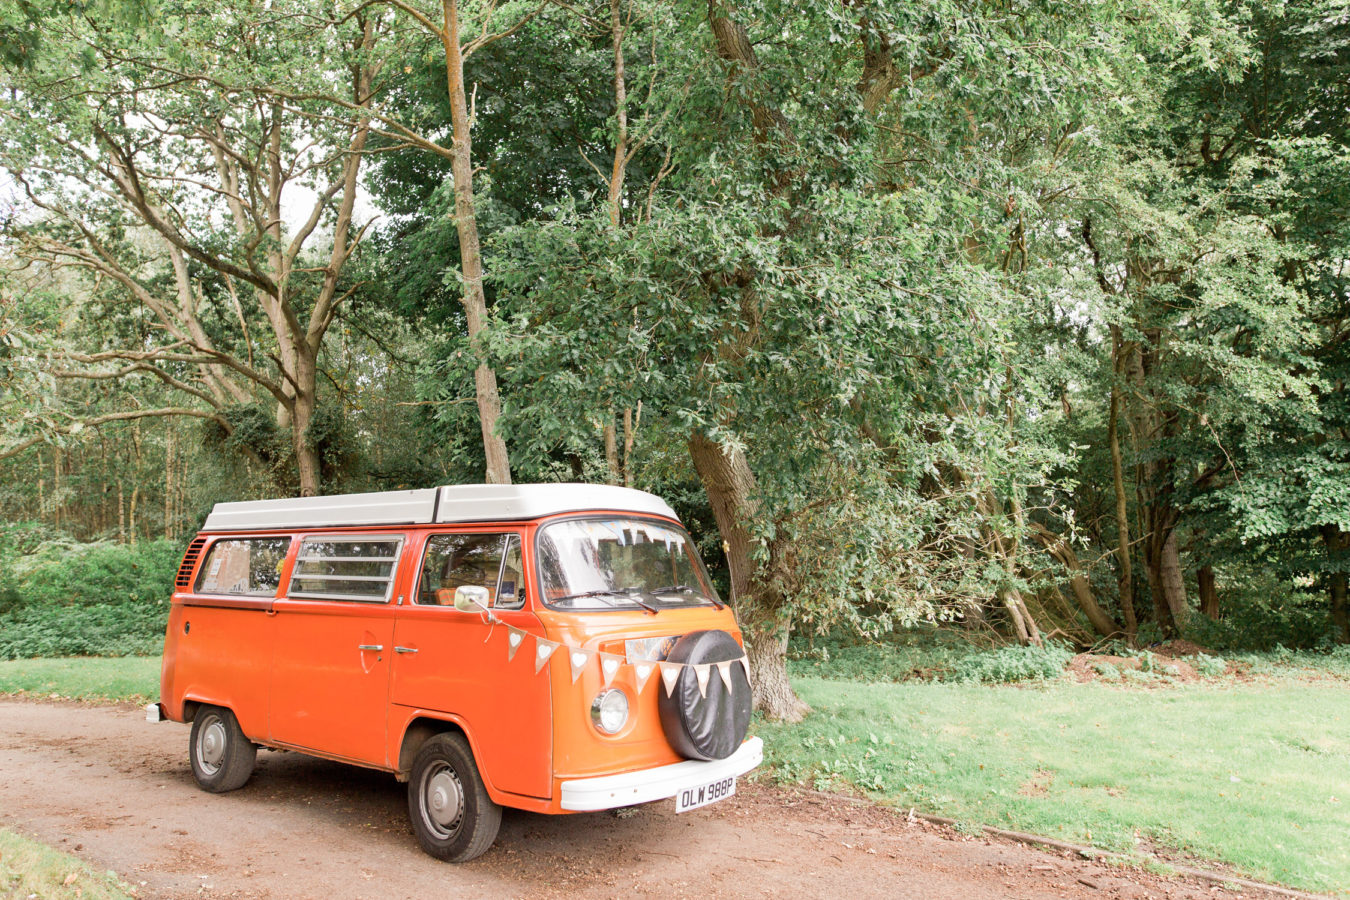 Wedding Hire VW Camper Van Wedding Transport landscape